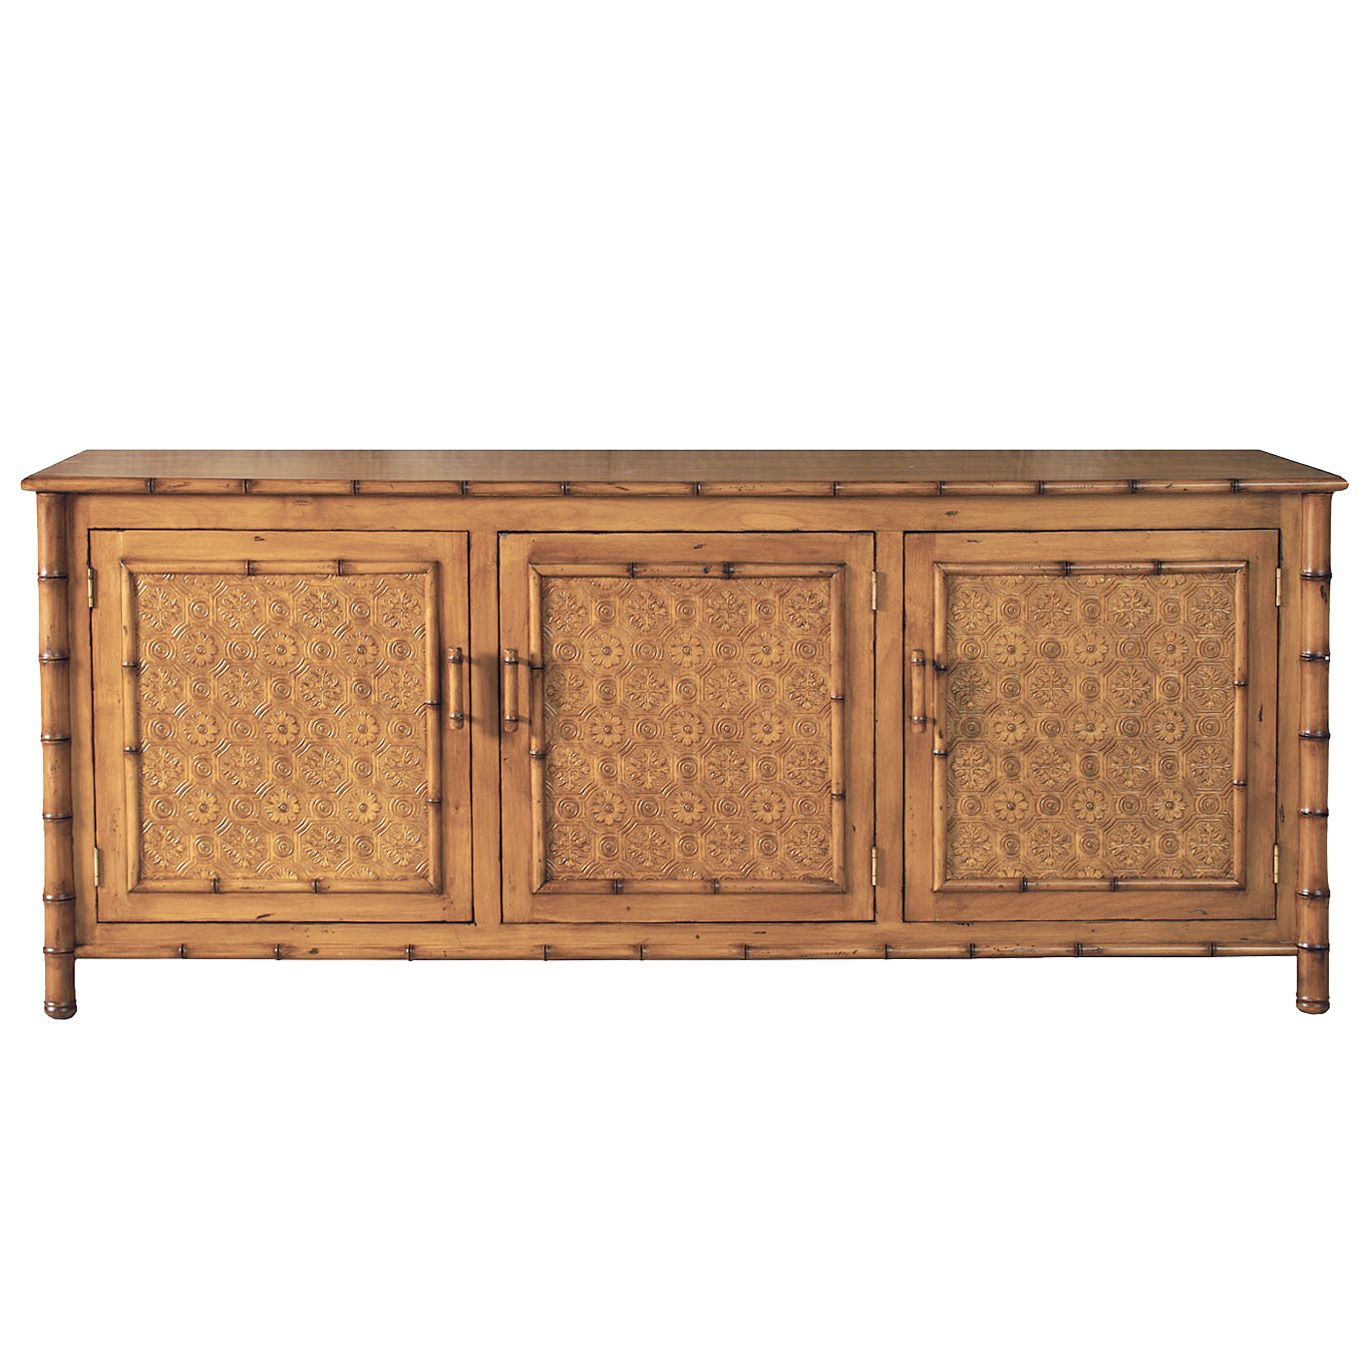 Faux Bamboo Entertainment Console @LaylaGrayce